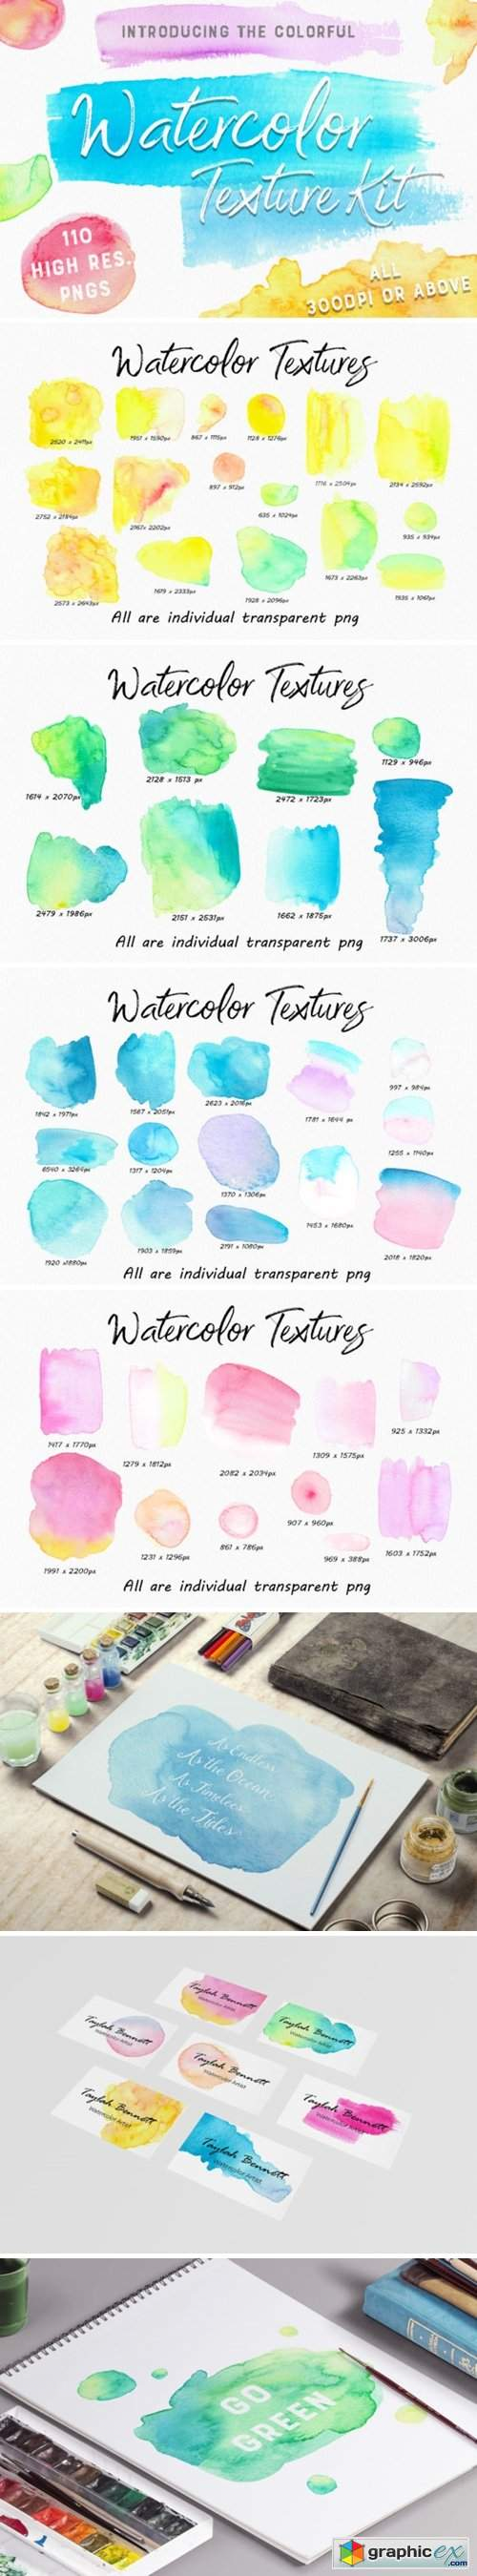 The Colourful Watercolour Kit